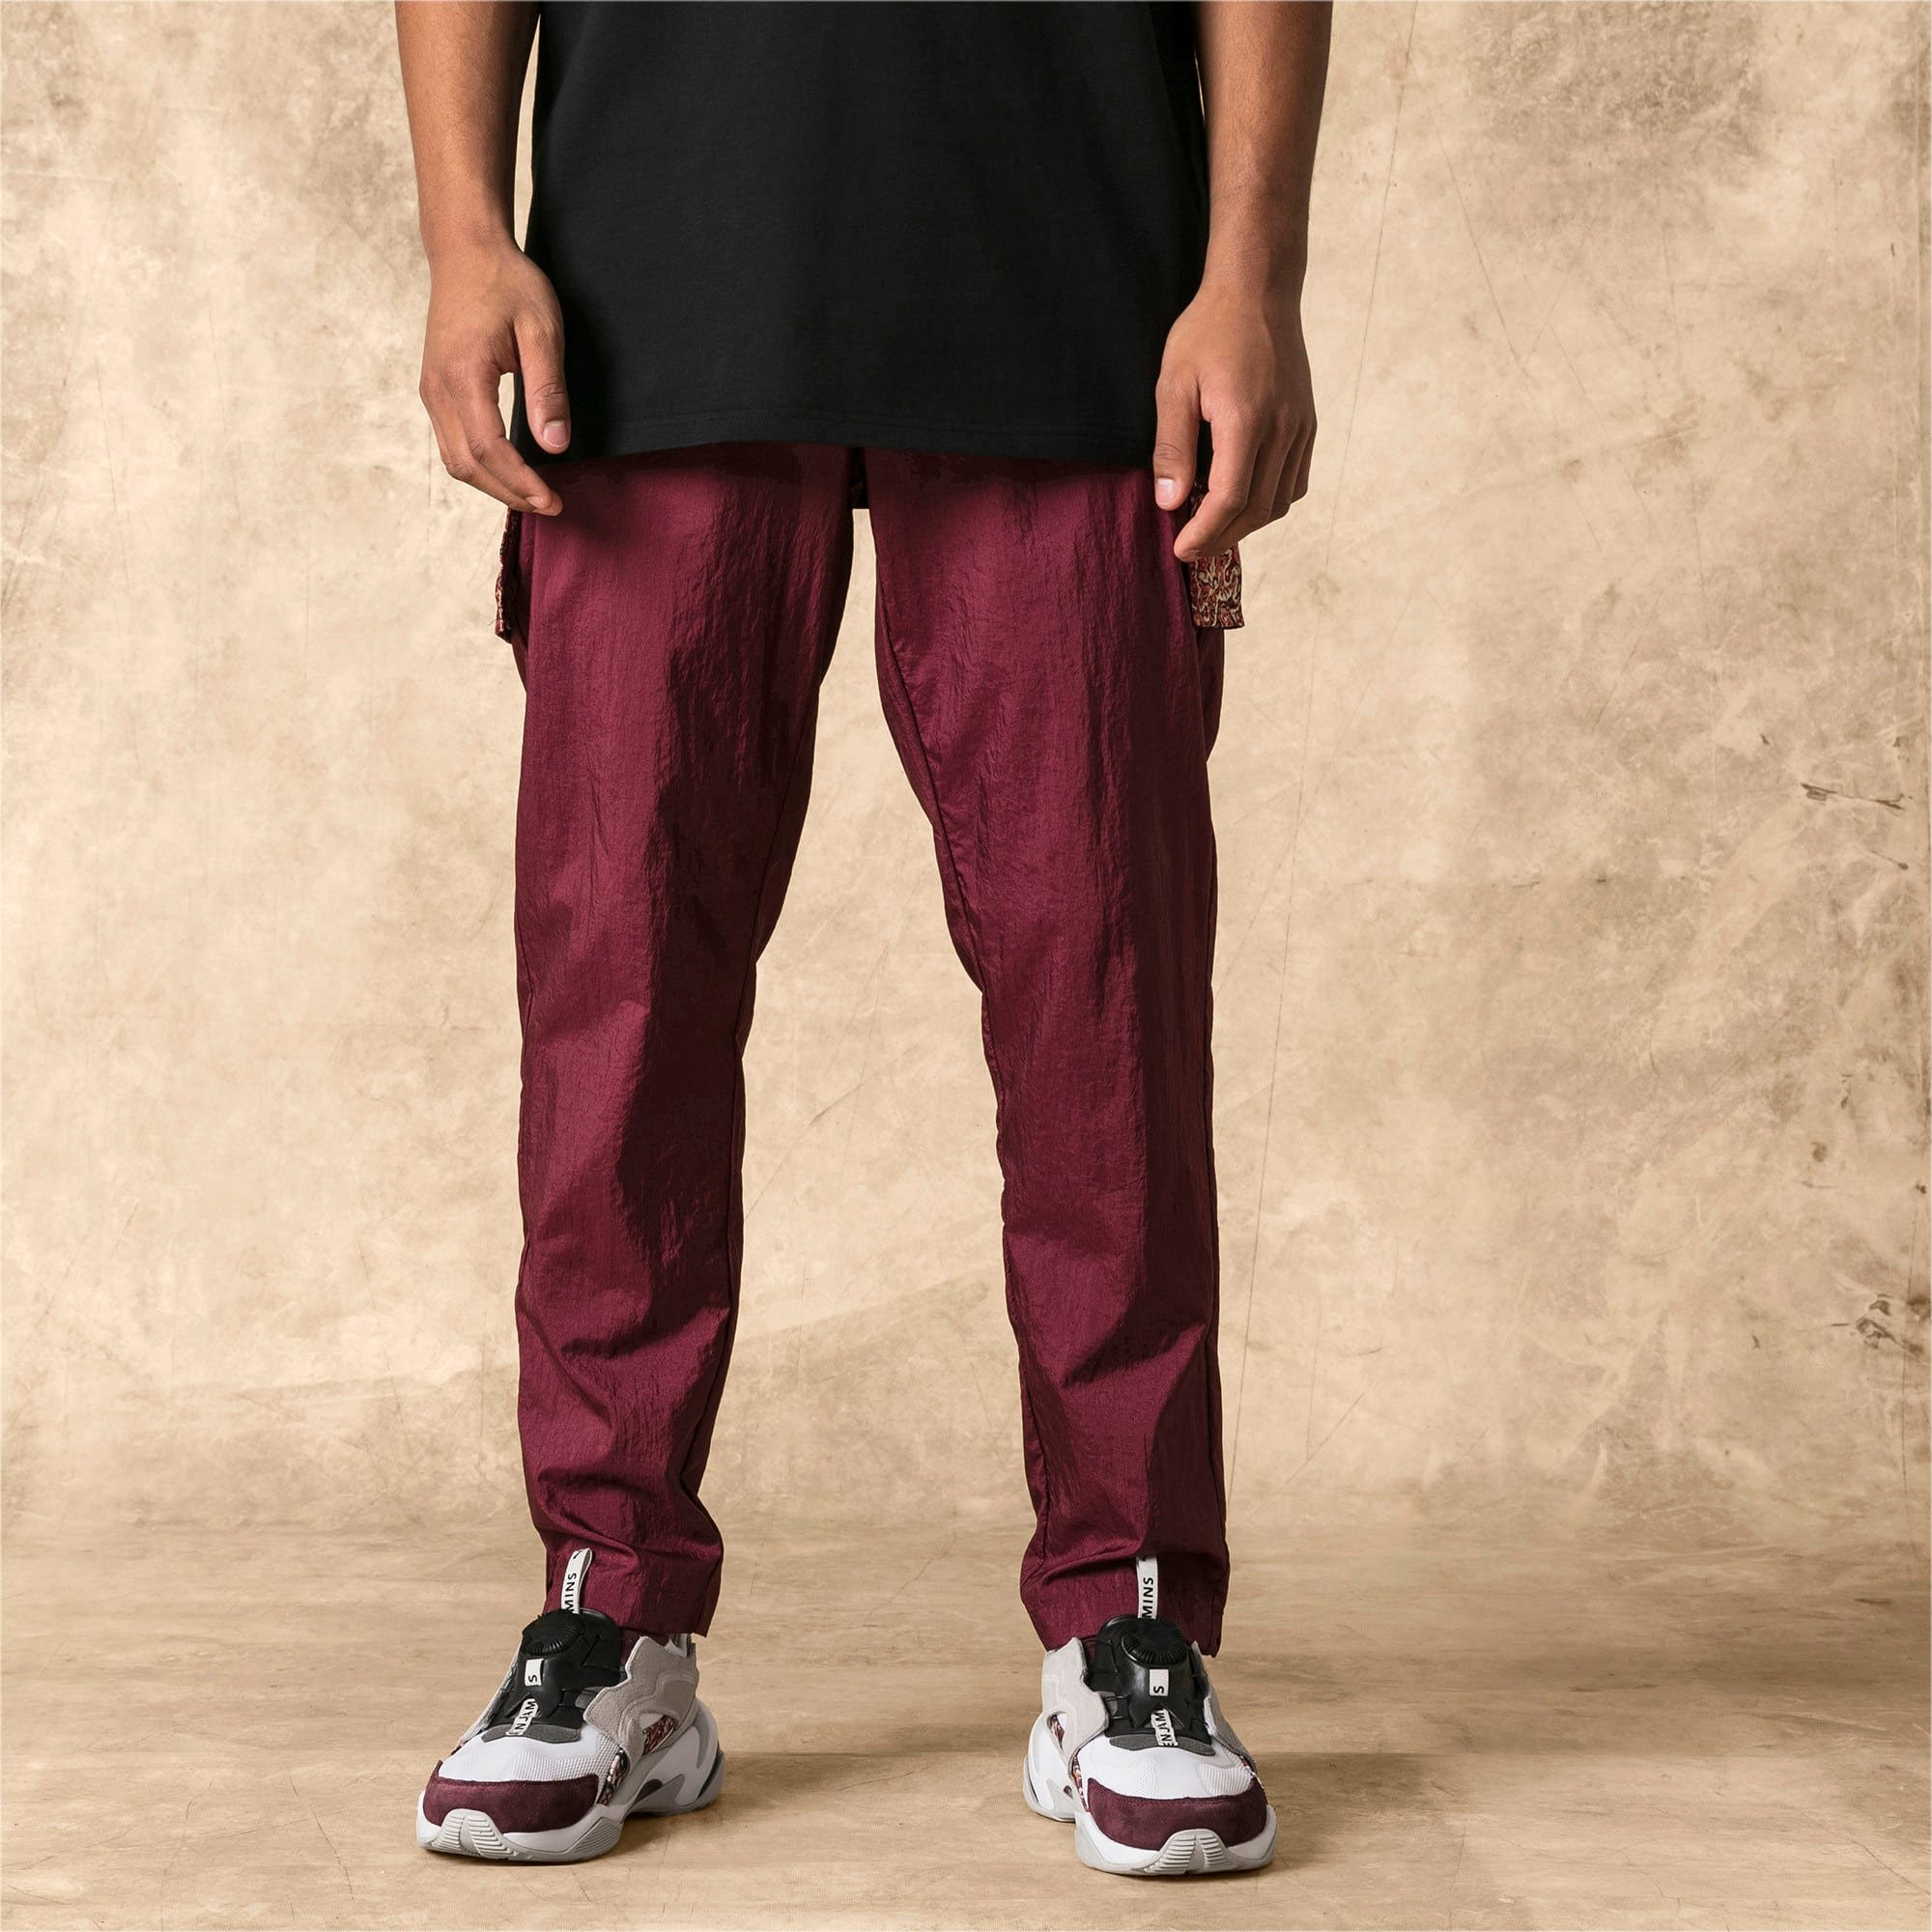 Thumbnail 1 of PUMA x LES BENJAMINS trainingsbroek voor heren, Burgundy, medium